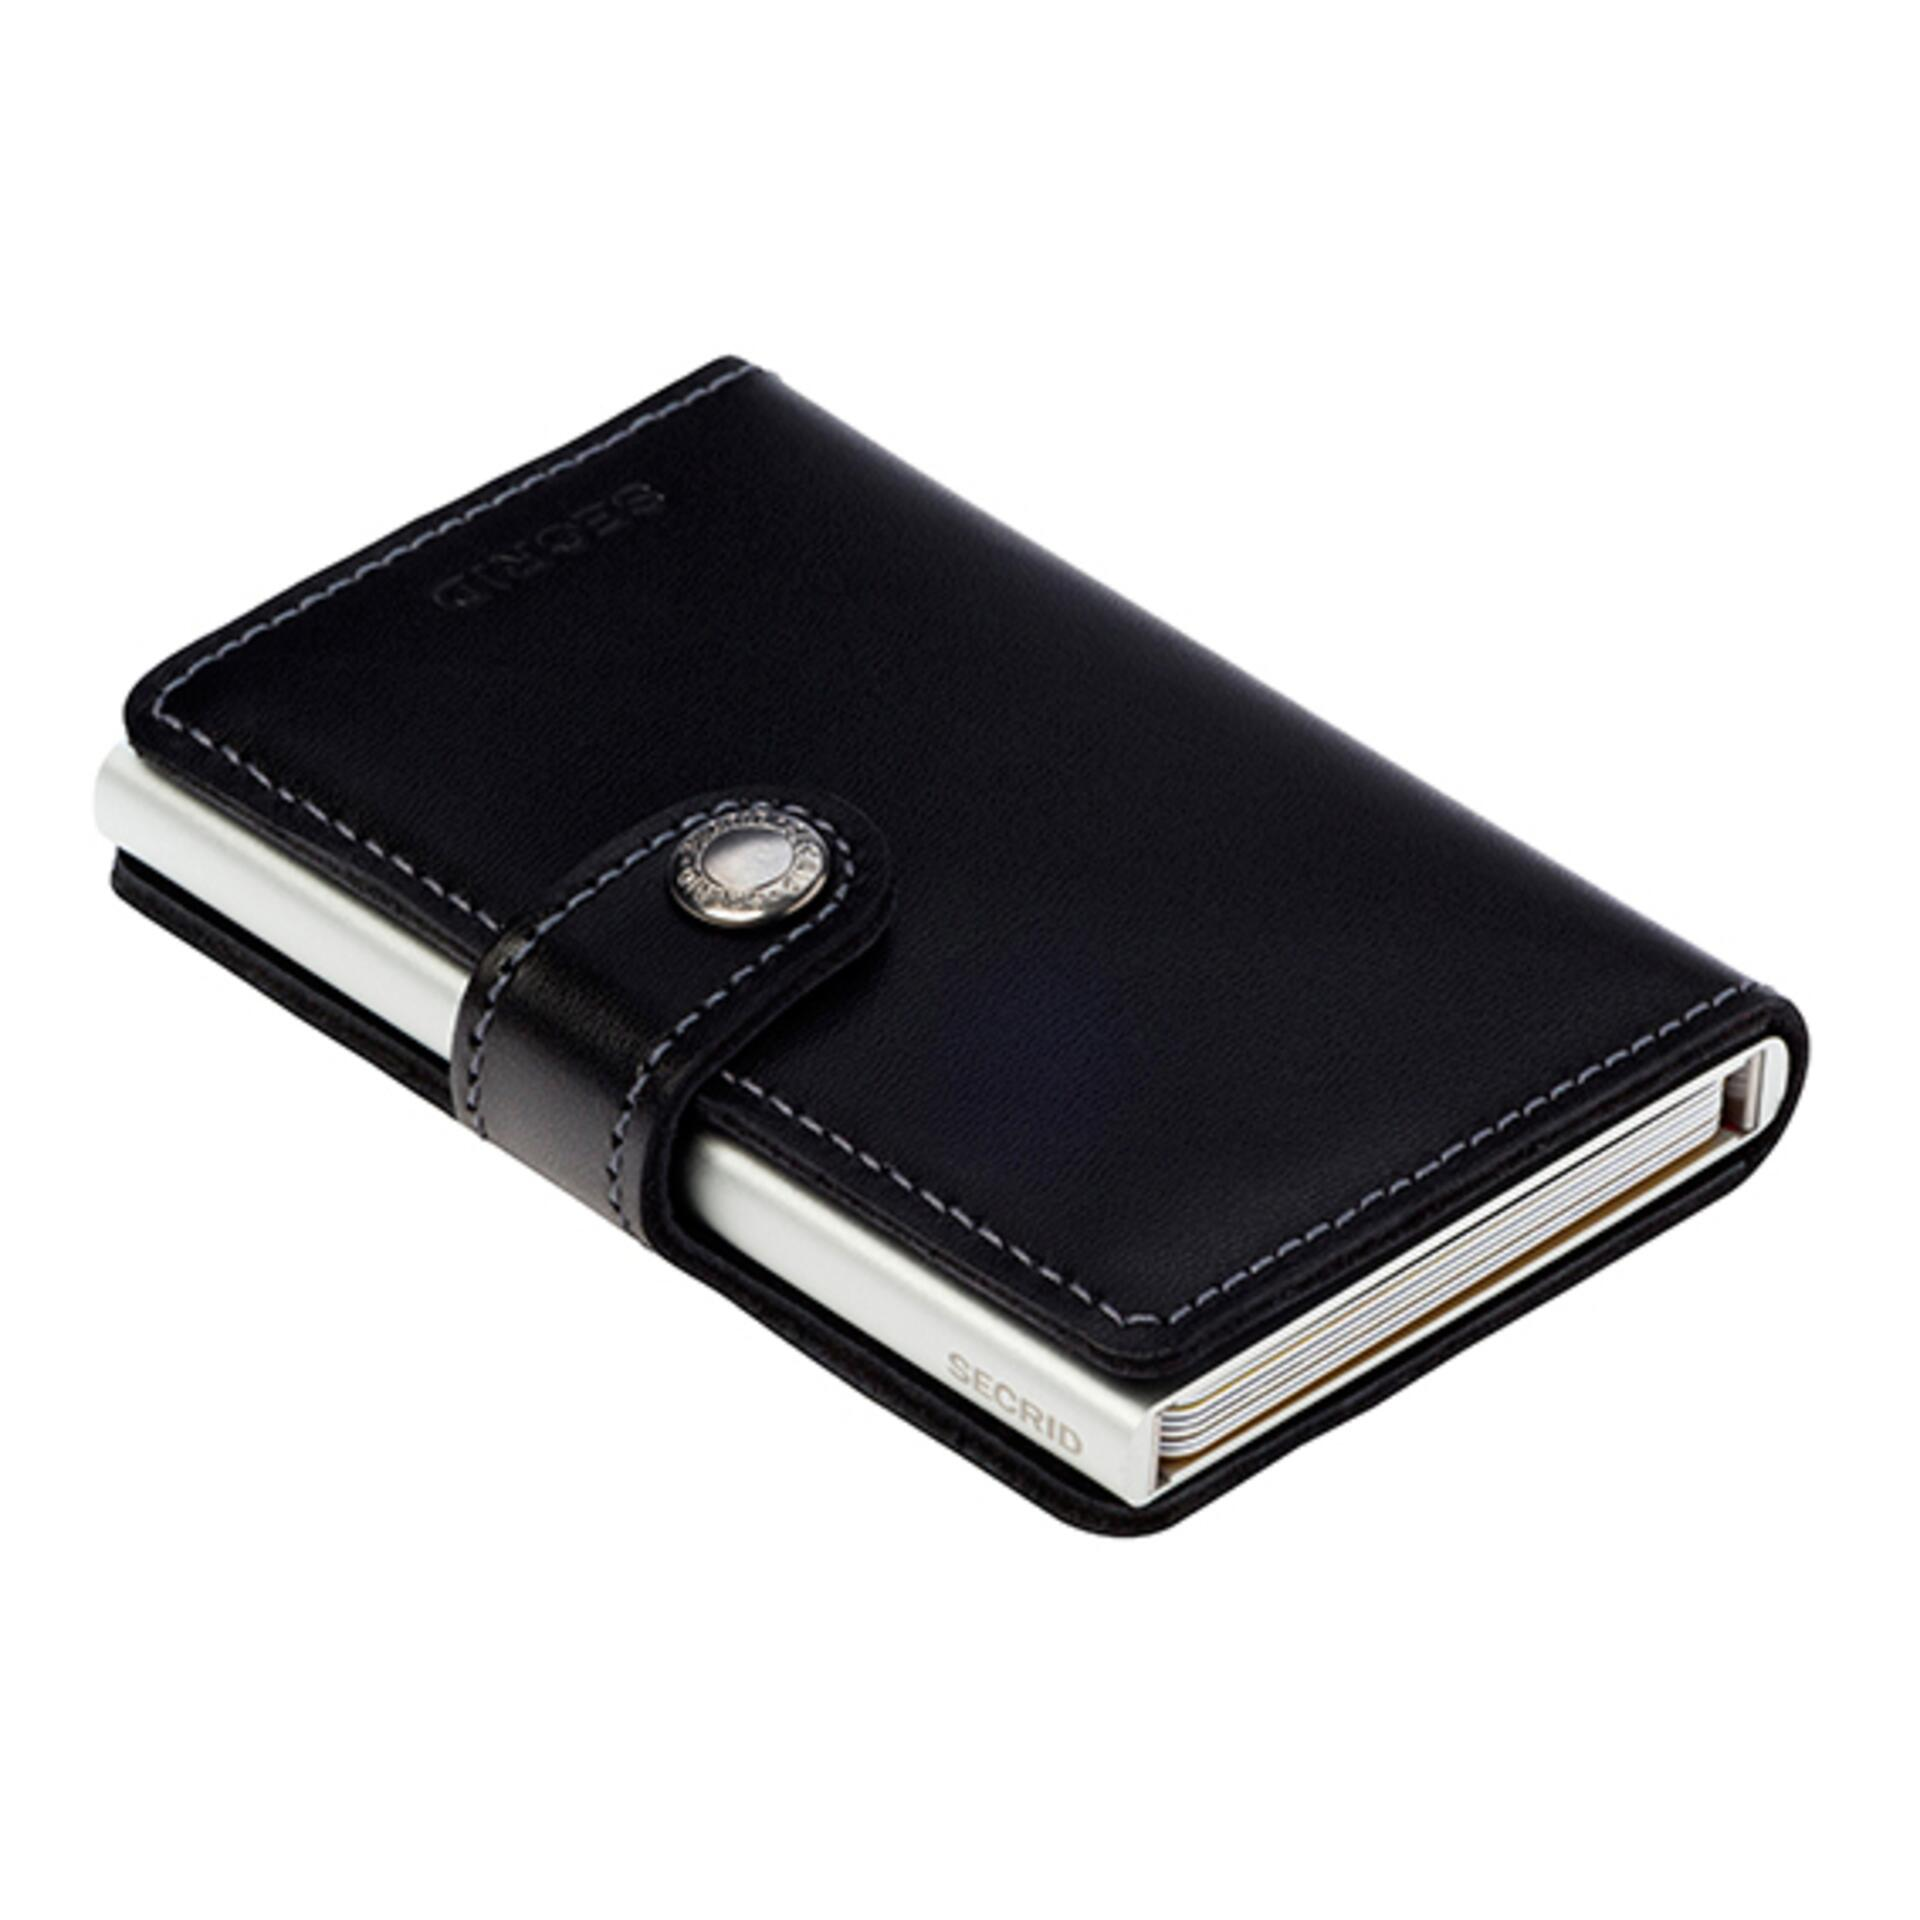 Secrid Miniwallet Original Black Leder